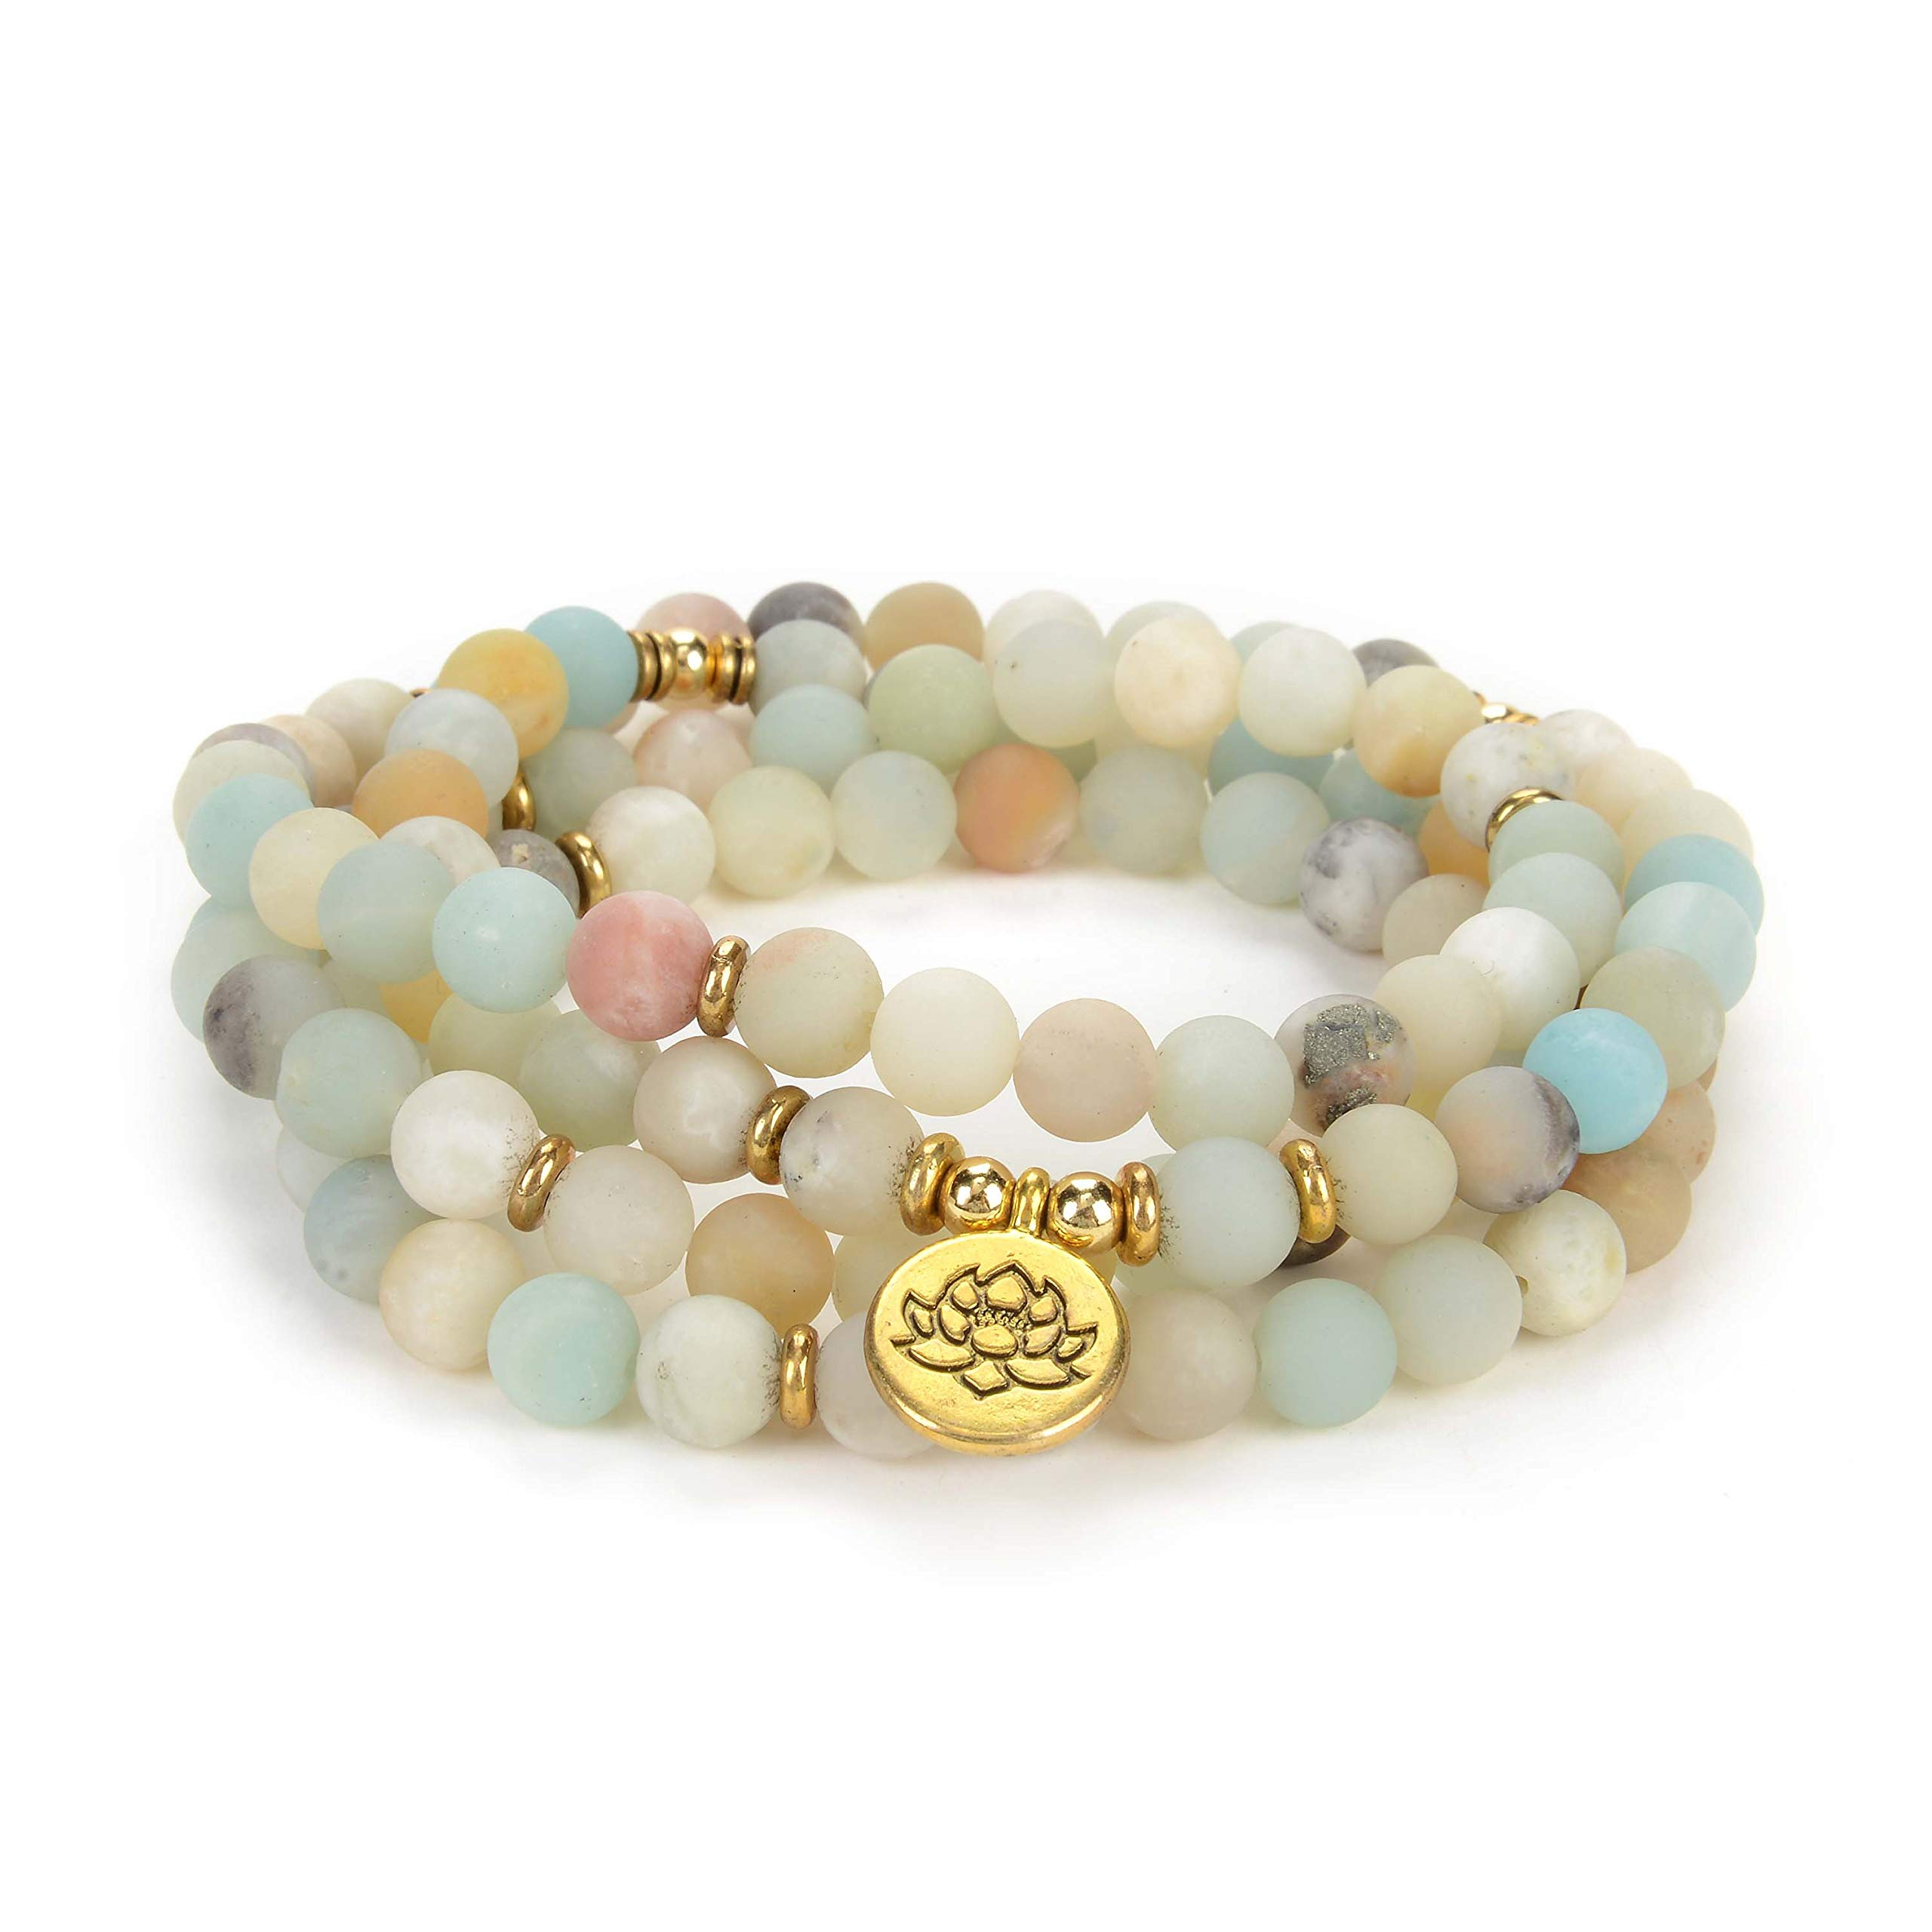 Self-Discovery 108 Natural Beads Japa Mala Yoga Wrap Bracelet Necklace with Lotus Seed Charm for Prayer